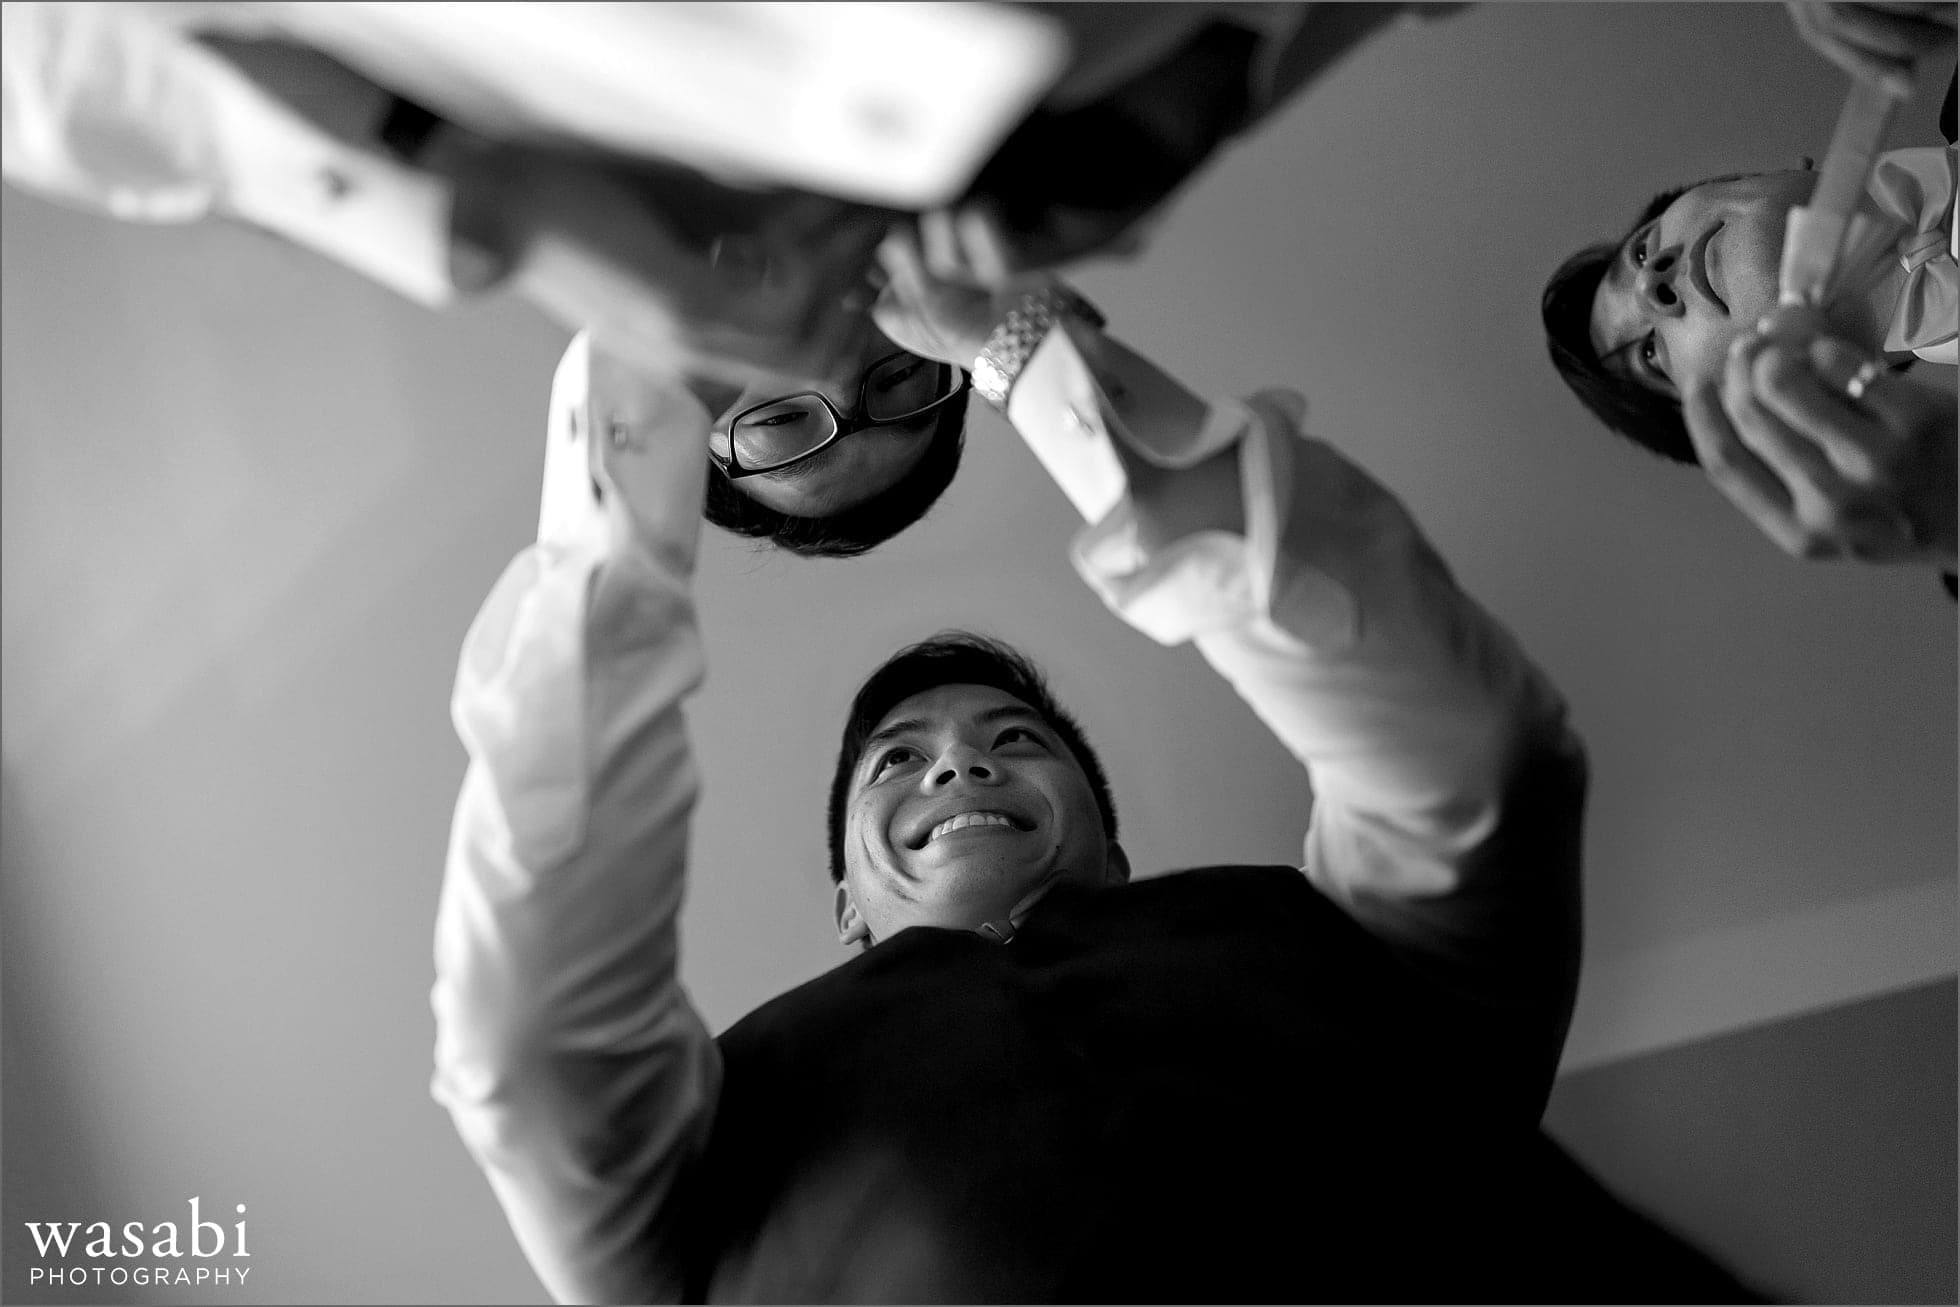 Unique angle of groom getting ready with groomsmen